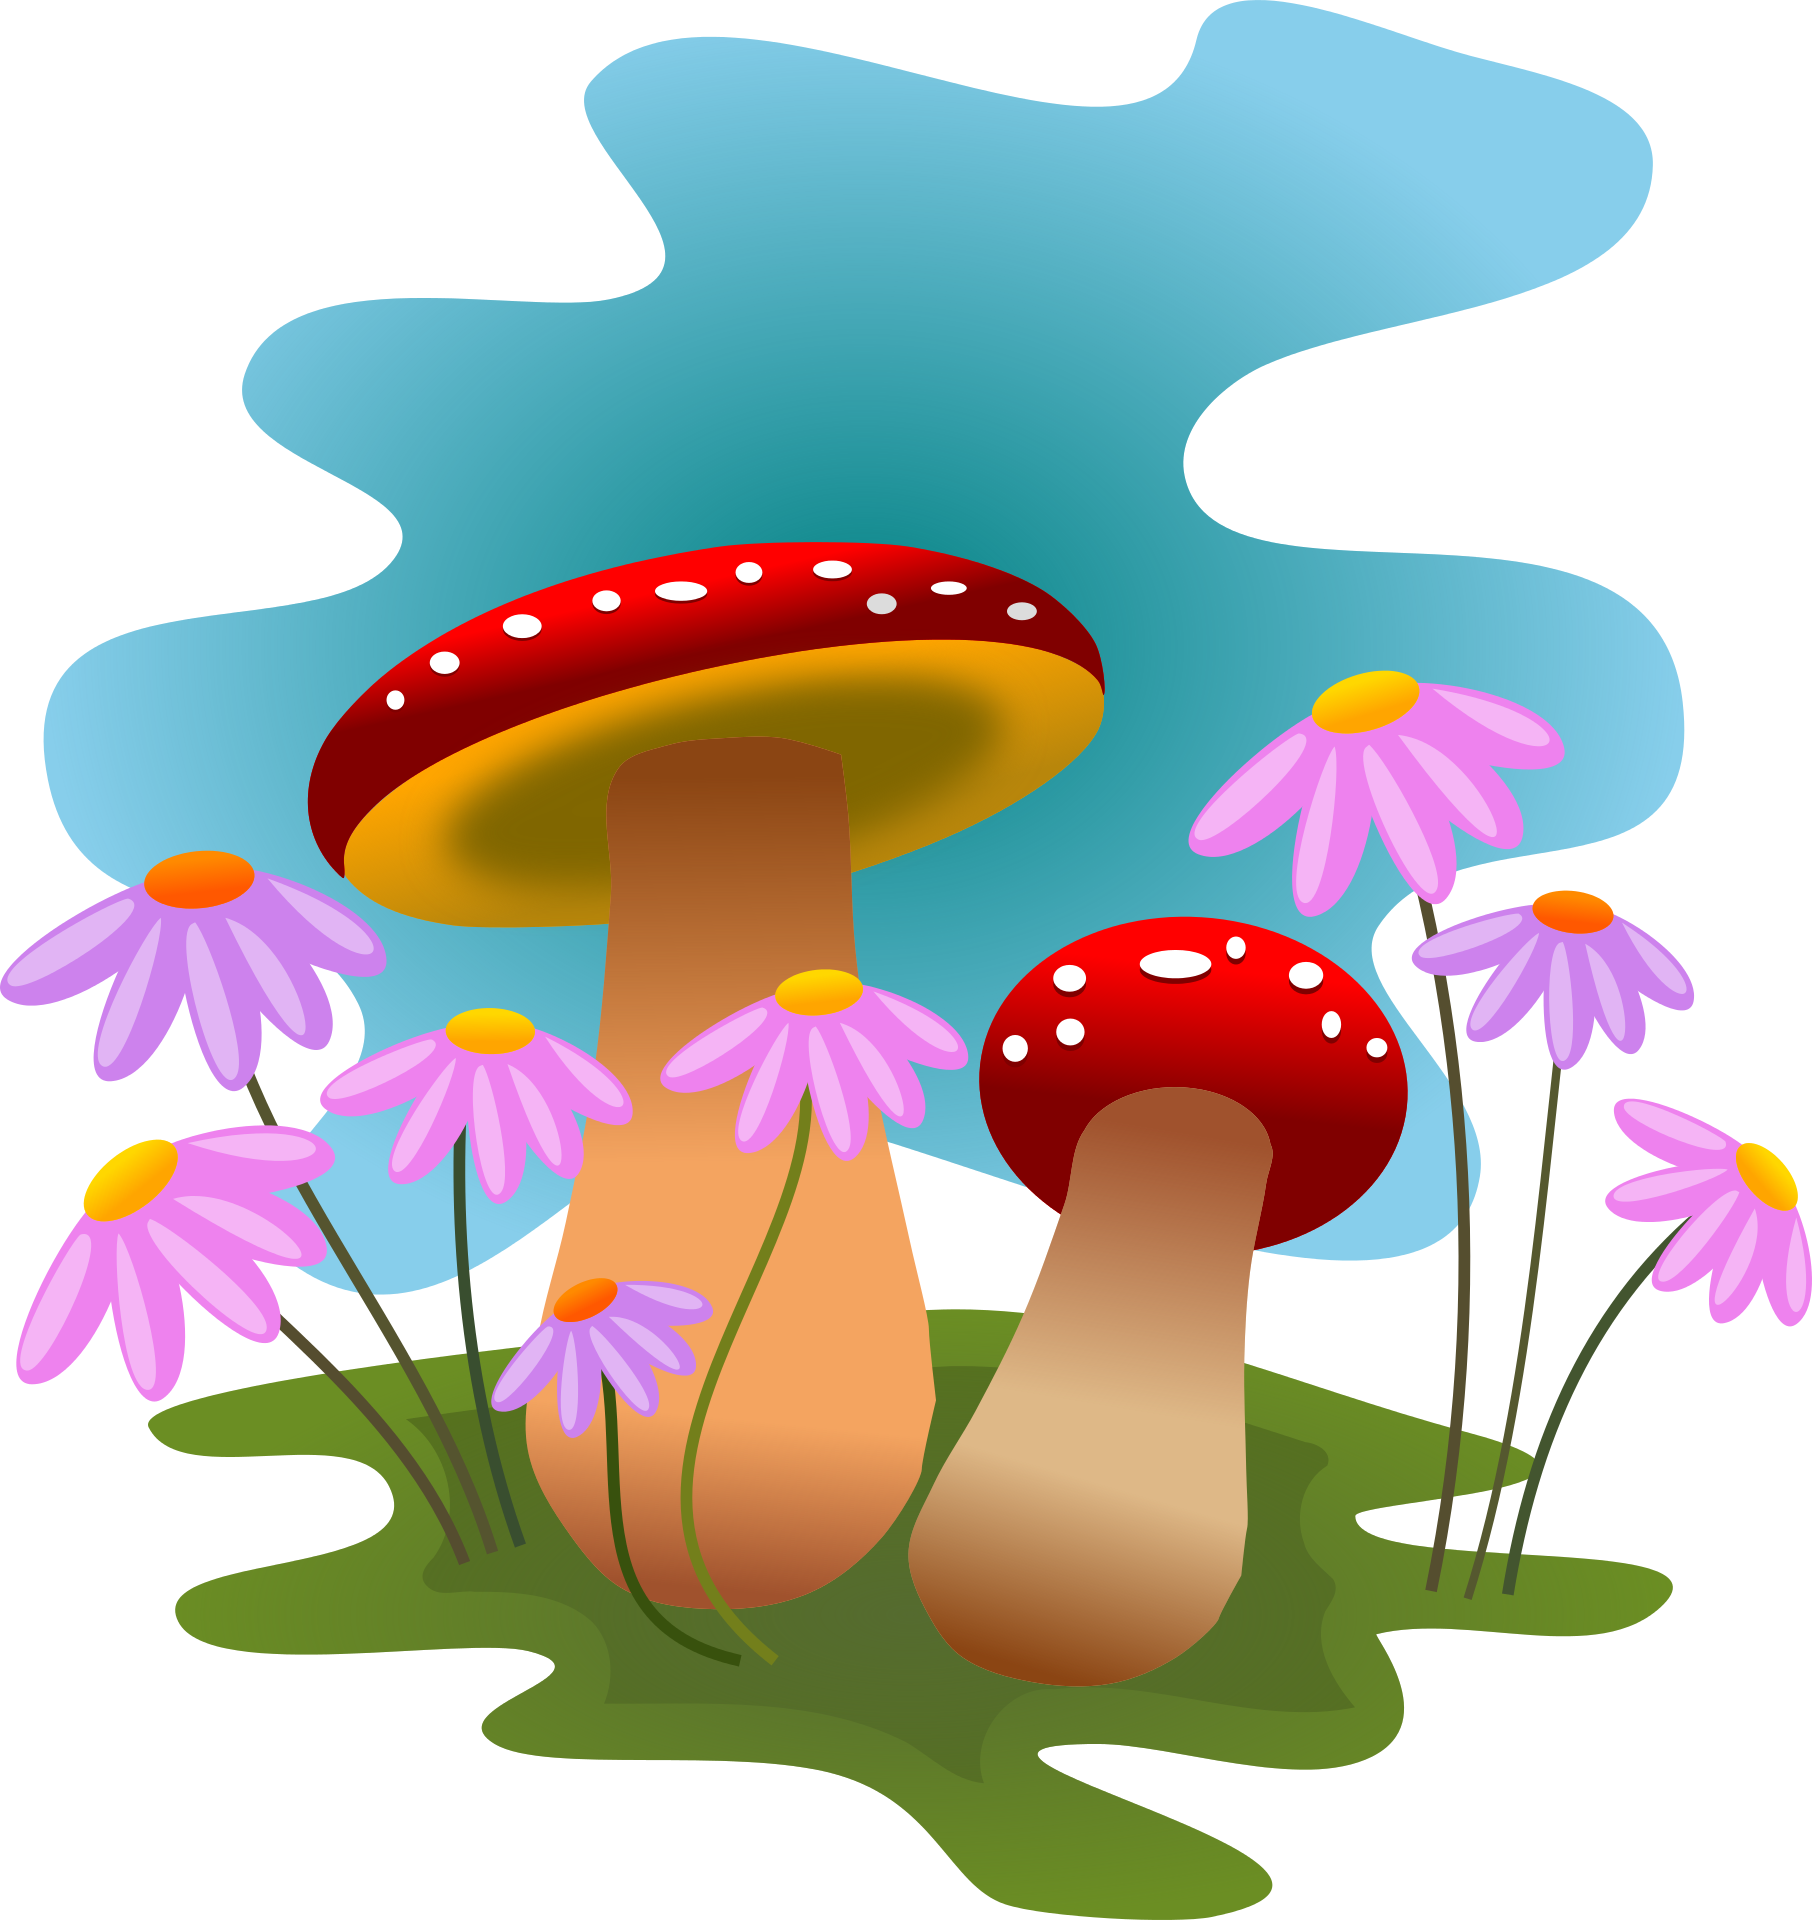 Fungi at getdrawings com. Mushrooms clipart cute sun cartoon